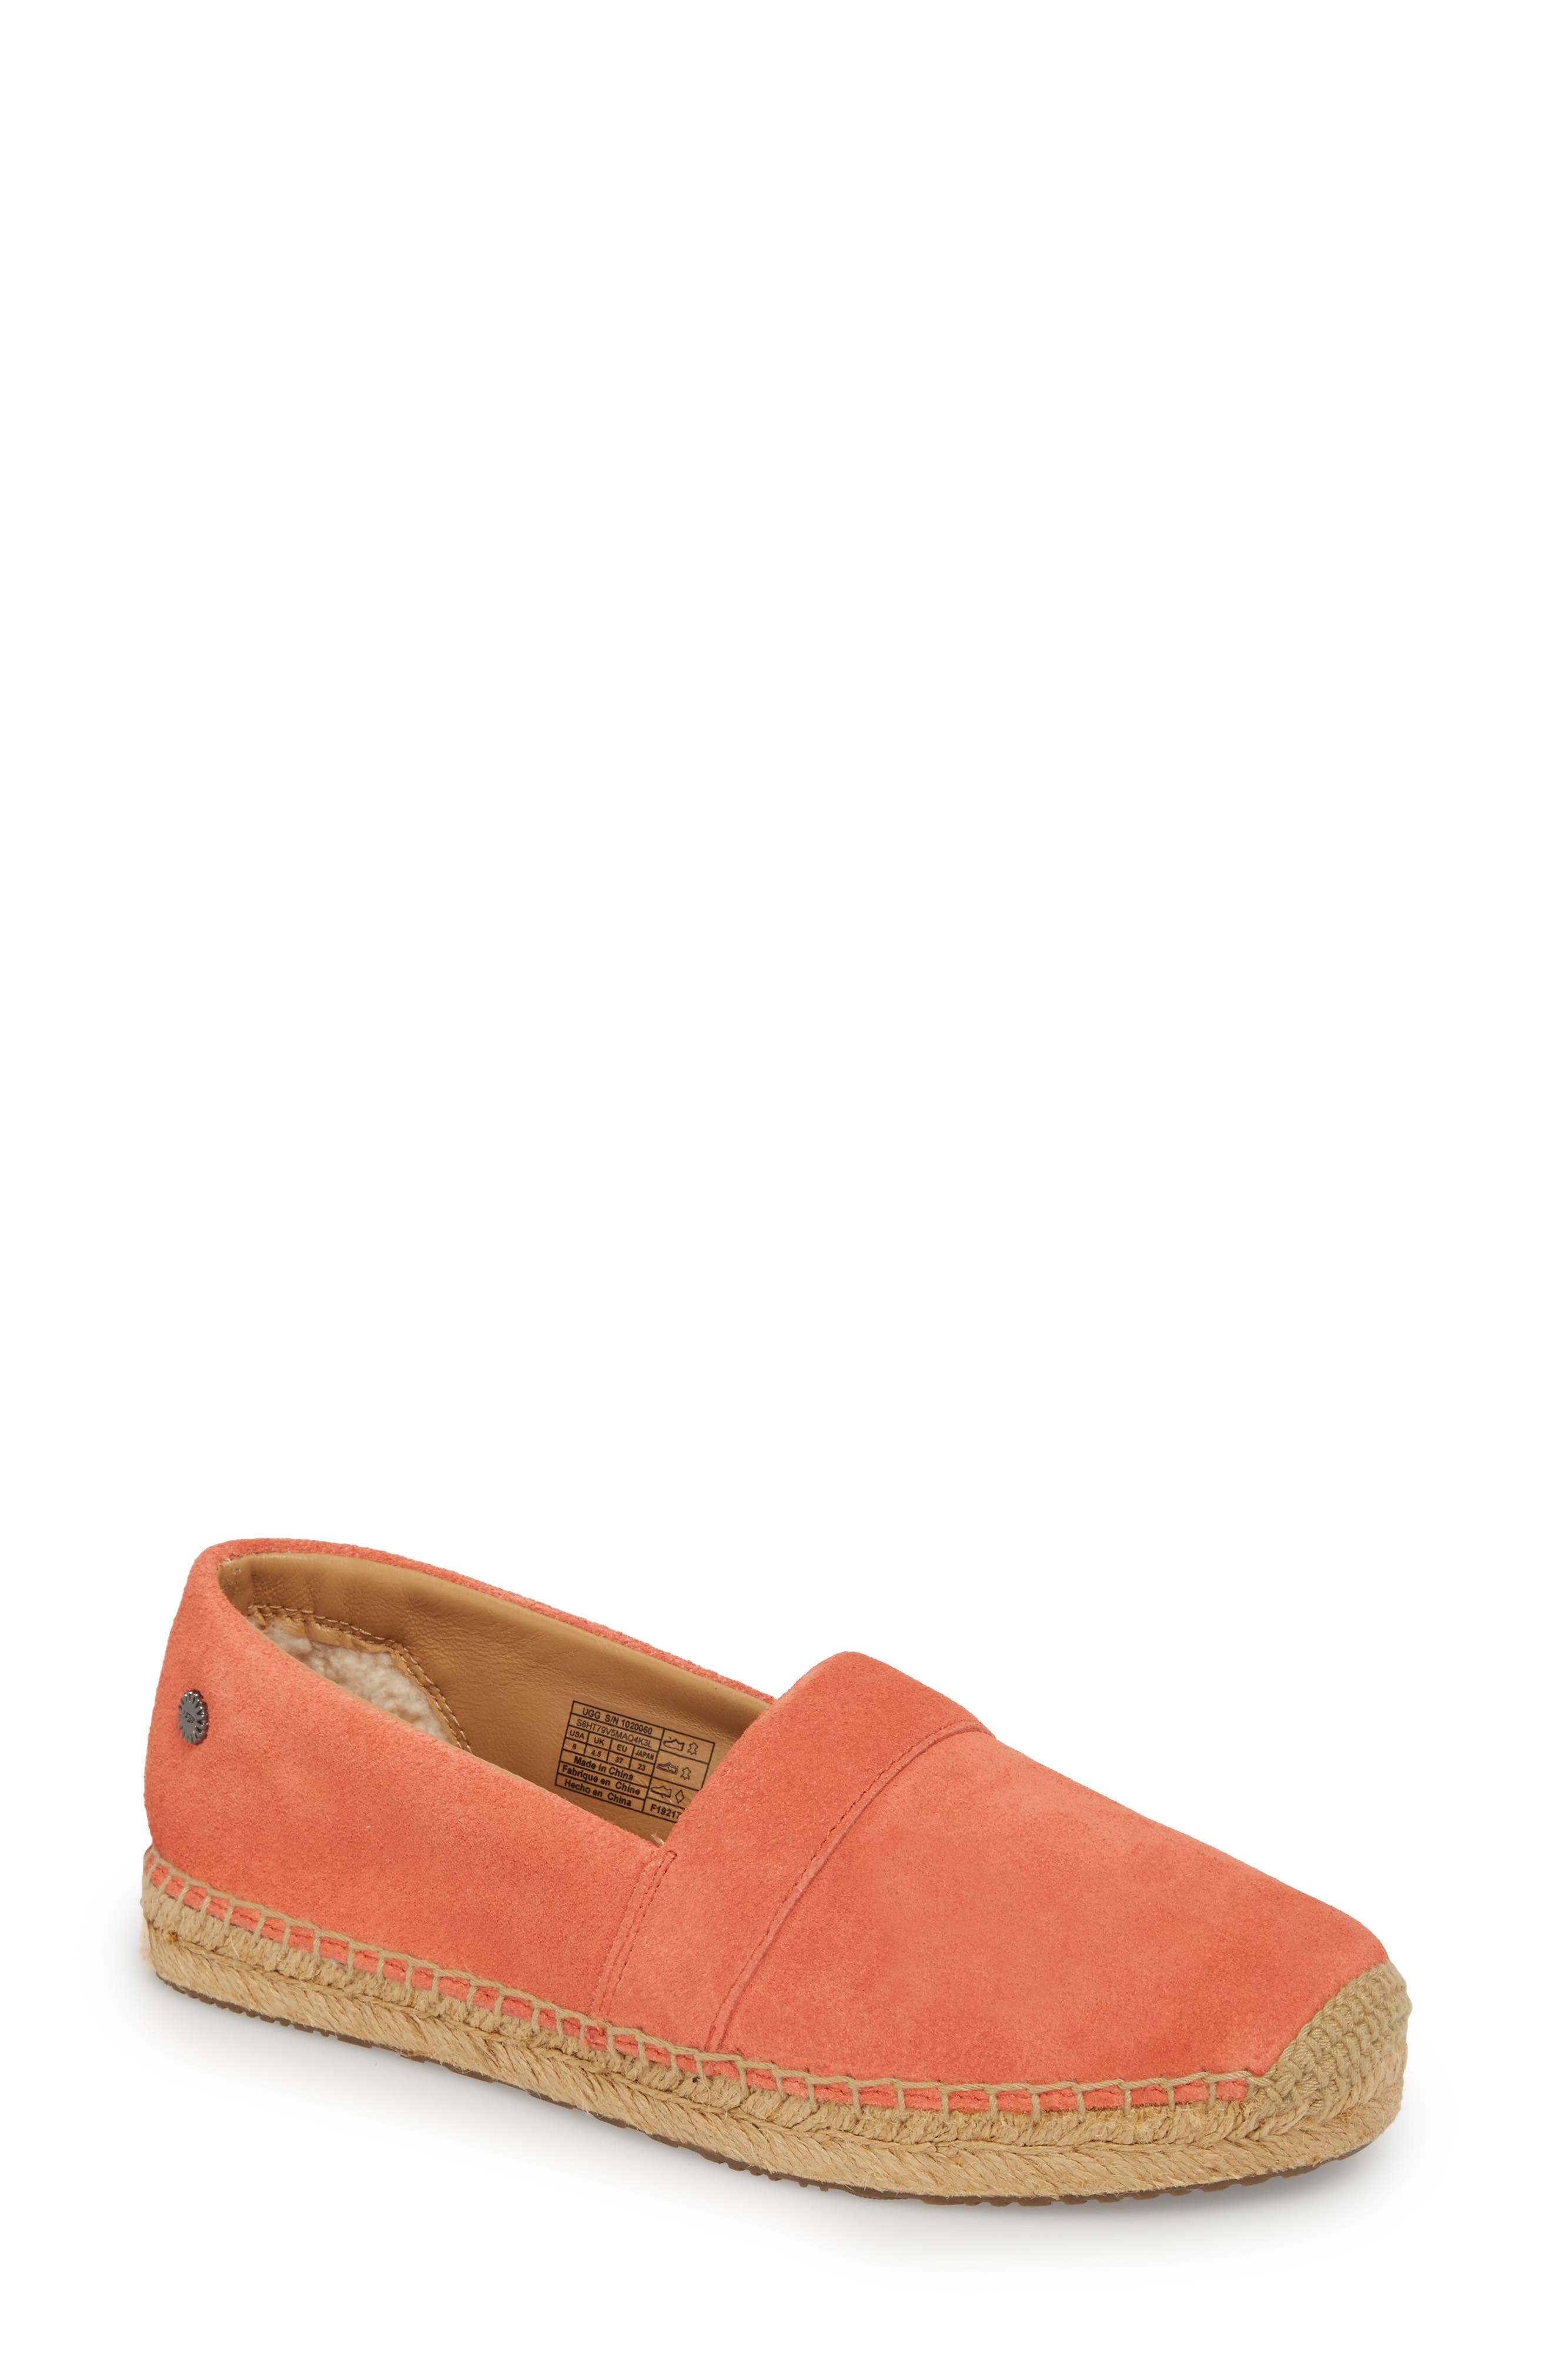 Reneda Espadrille Slip-On,                             Main thumbnail 1, color,                             Fusion Coral Suede